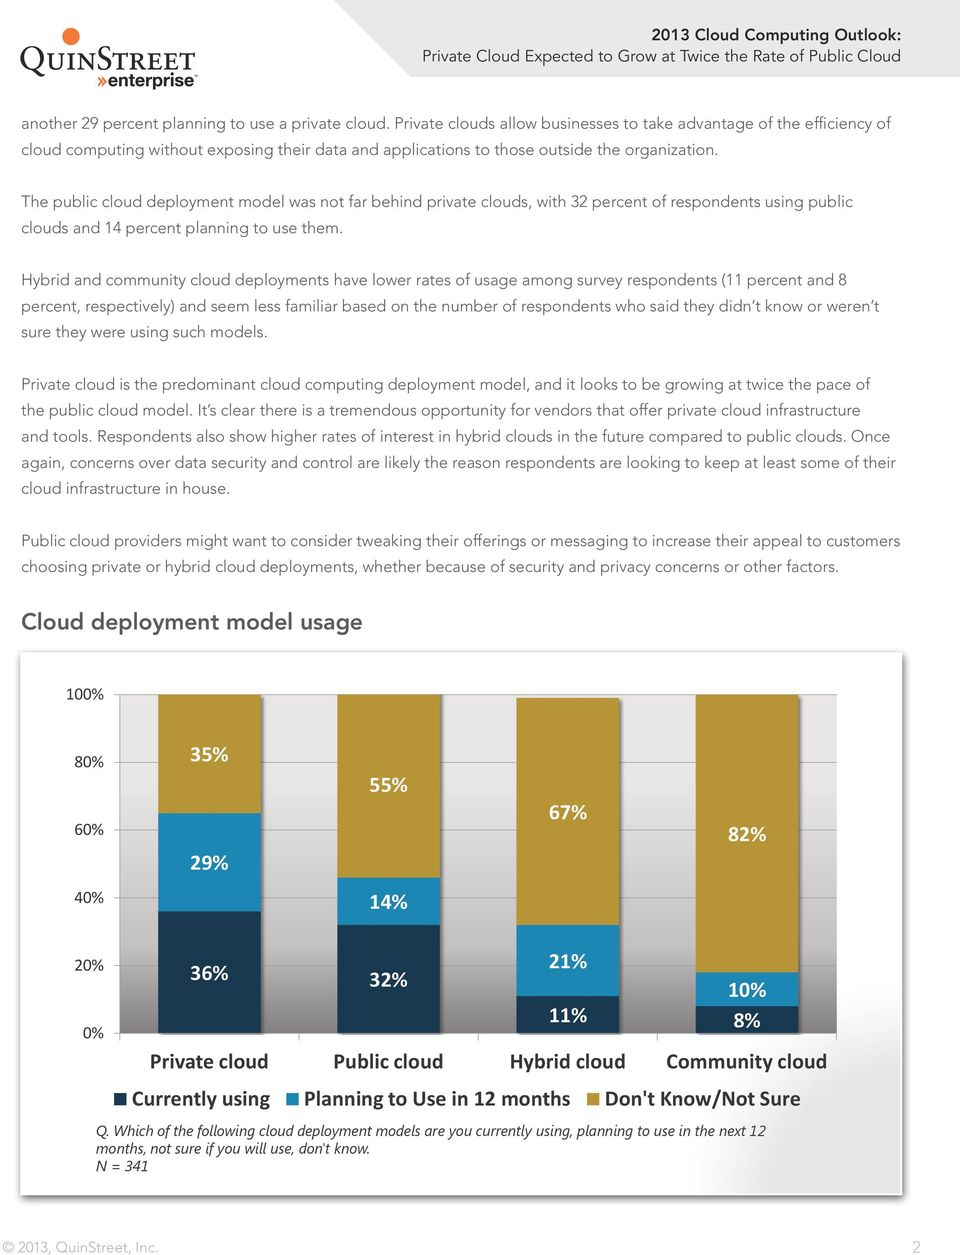 The public cloud deployment model was not far behind private clouds, with 32 percent of respondents using public clouds and 14 percent planning to use them.